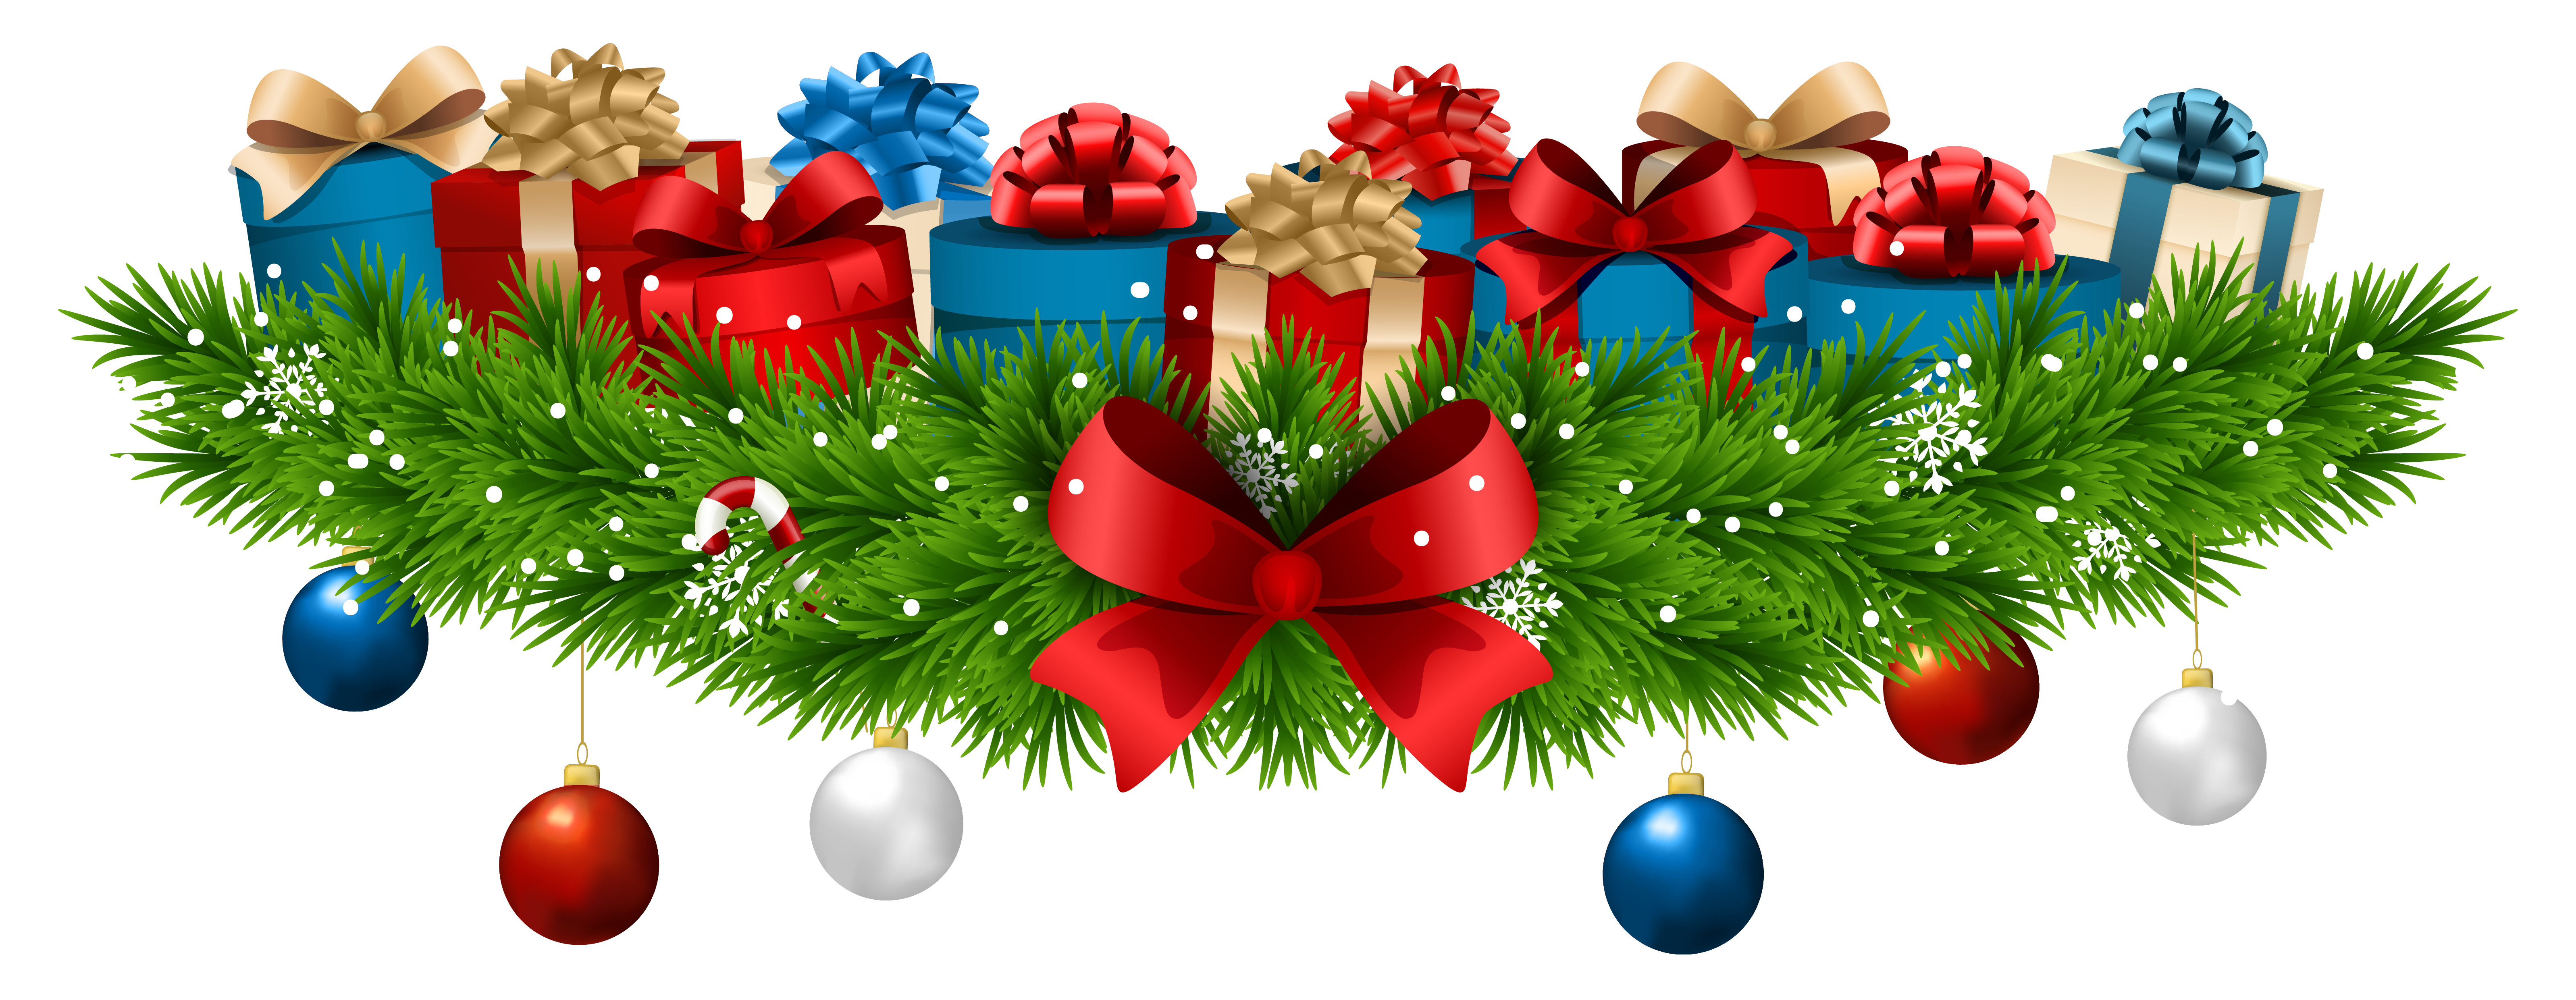 Christmas gift png. Decoration with gifts clip